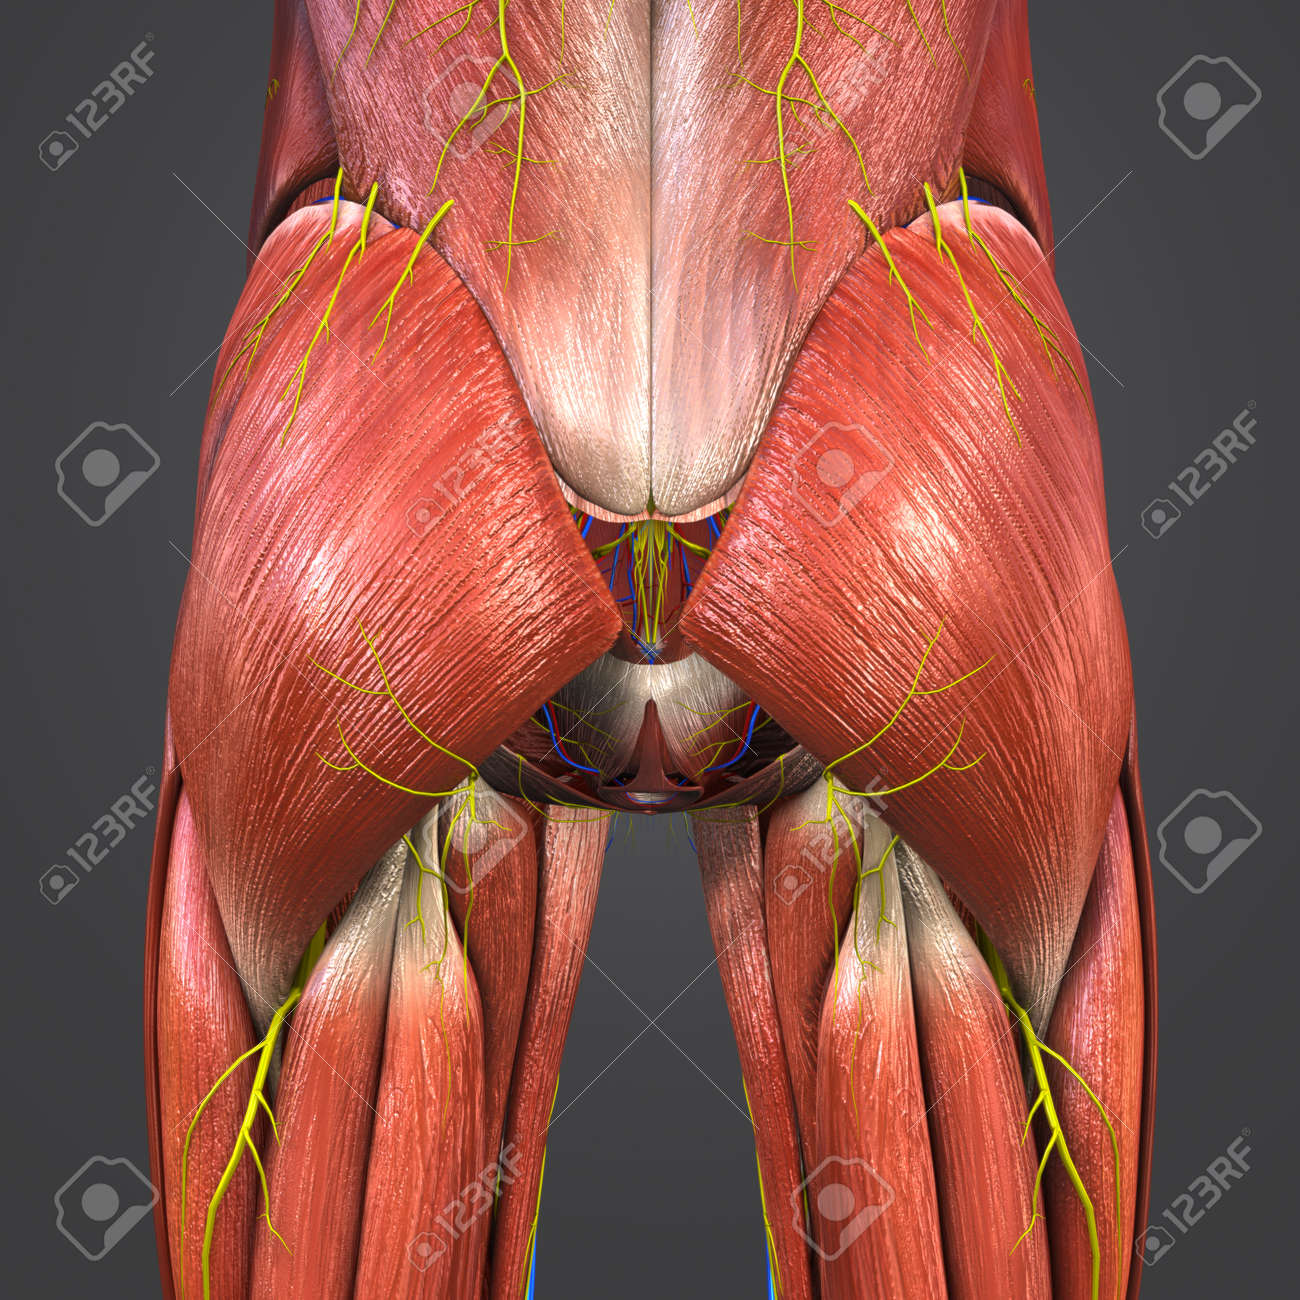 Hip Muscles Anatomy With Blood Vessels And Nerves Stock Photo